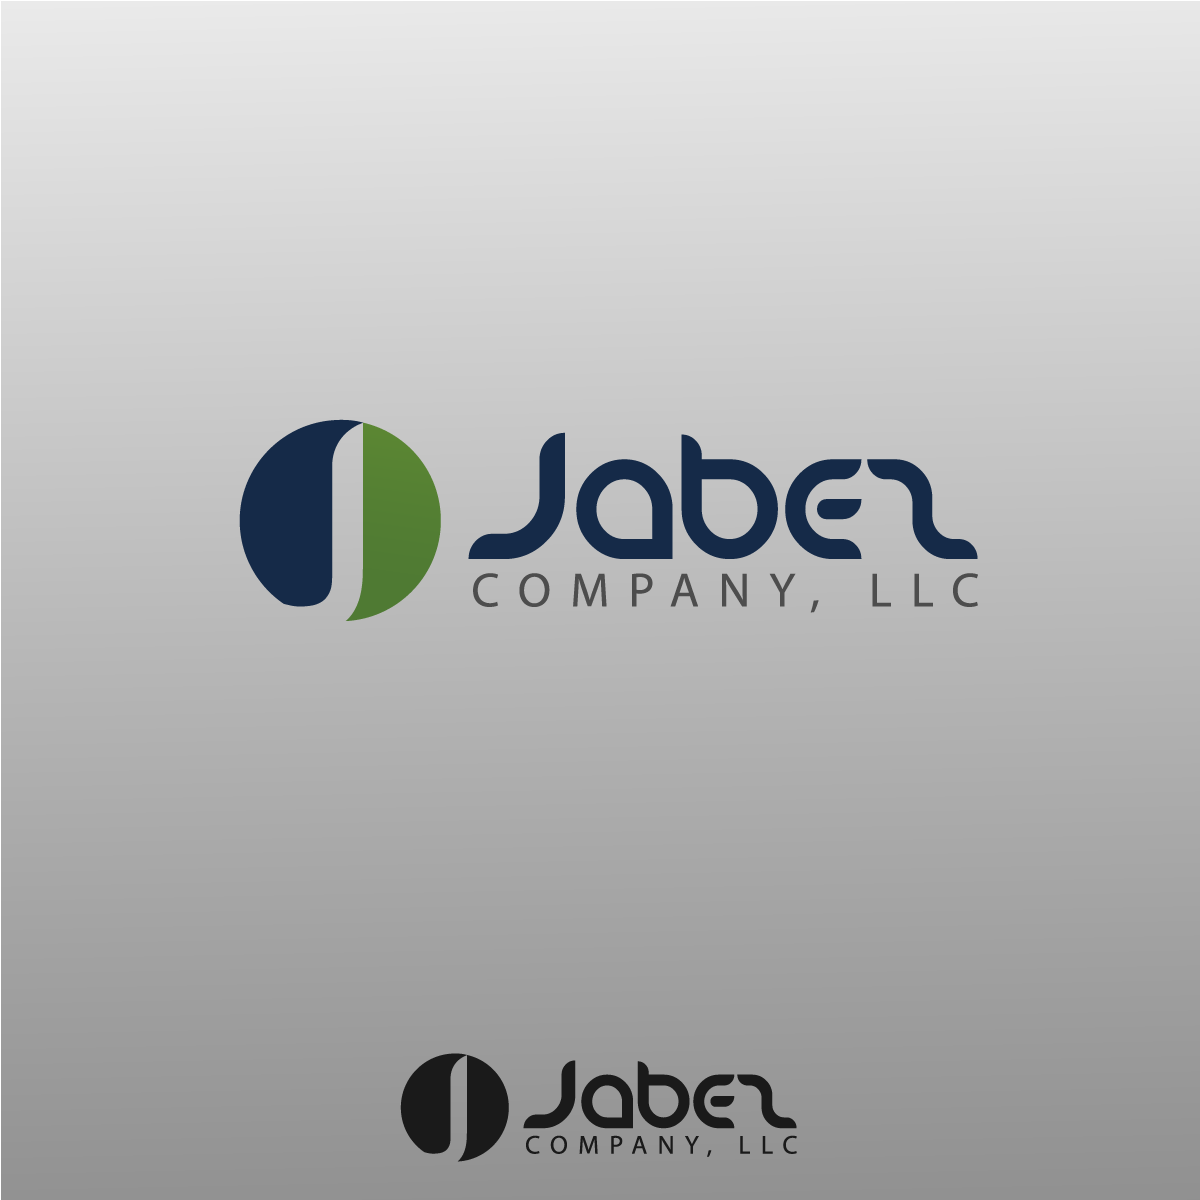 Logo Design by rockin - Entry No. 21 in the Logo Design Contest New Logo Design for Jabez Compnay, LLC.